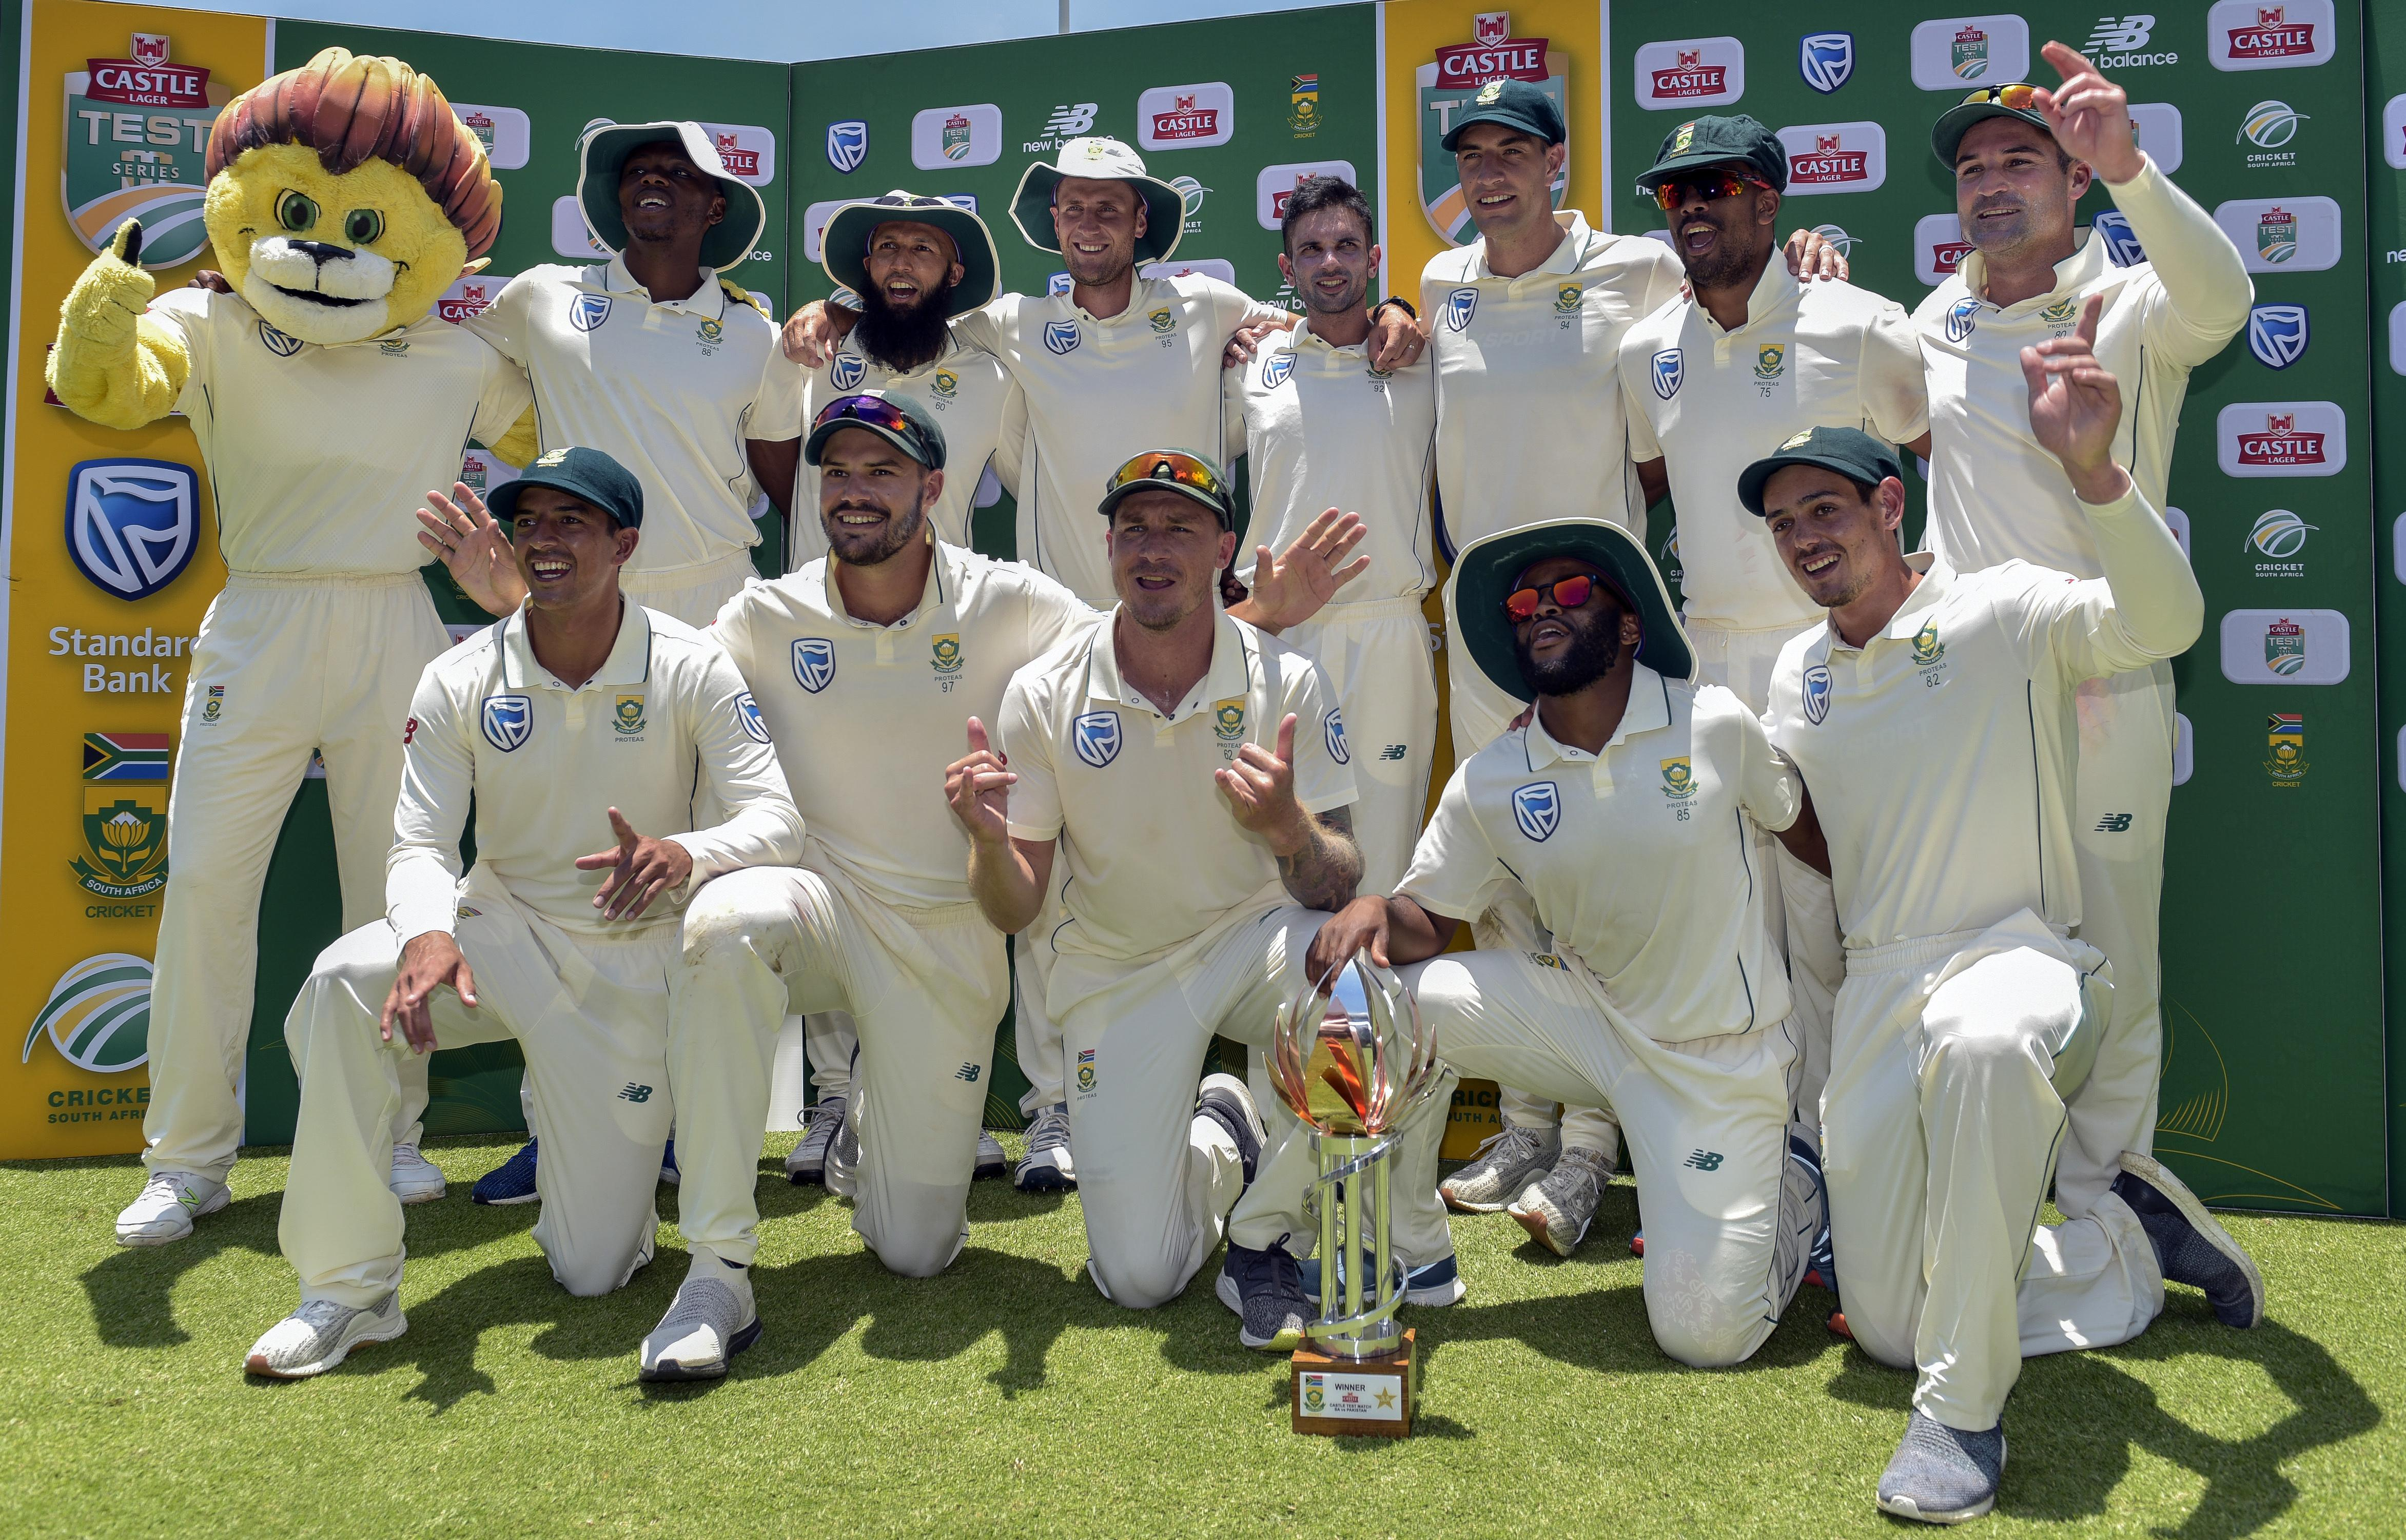 South Africa dominated the recent Test series